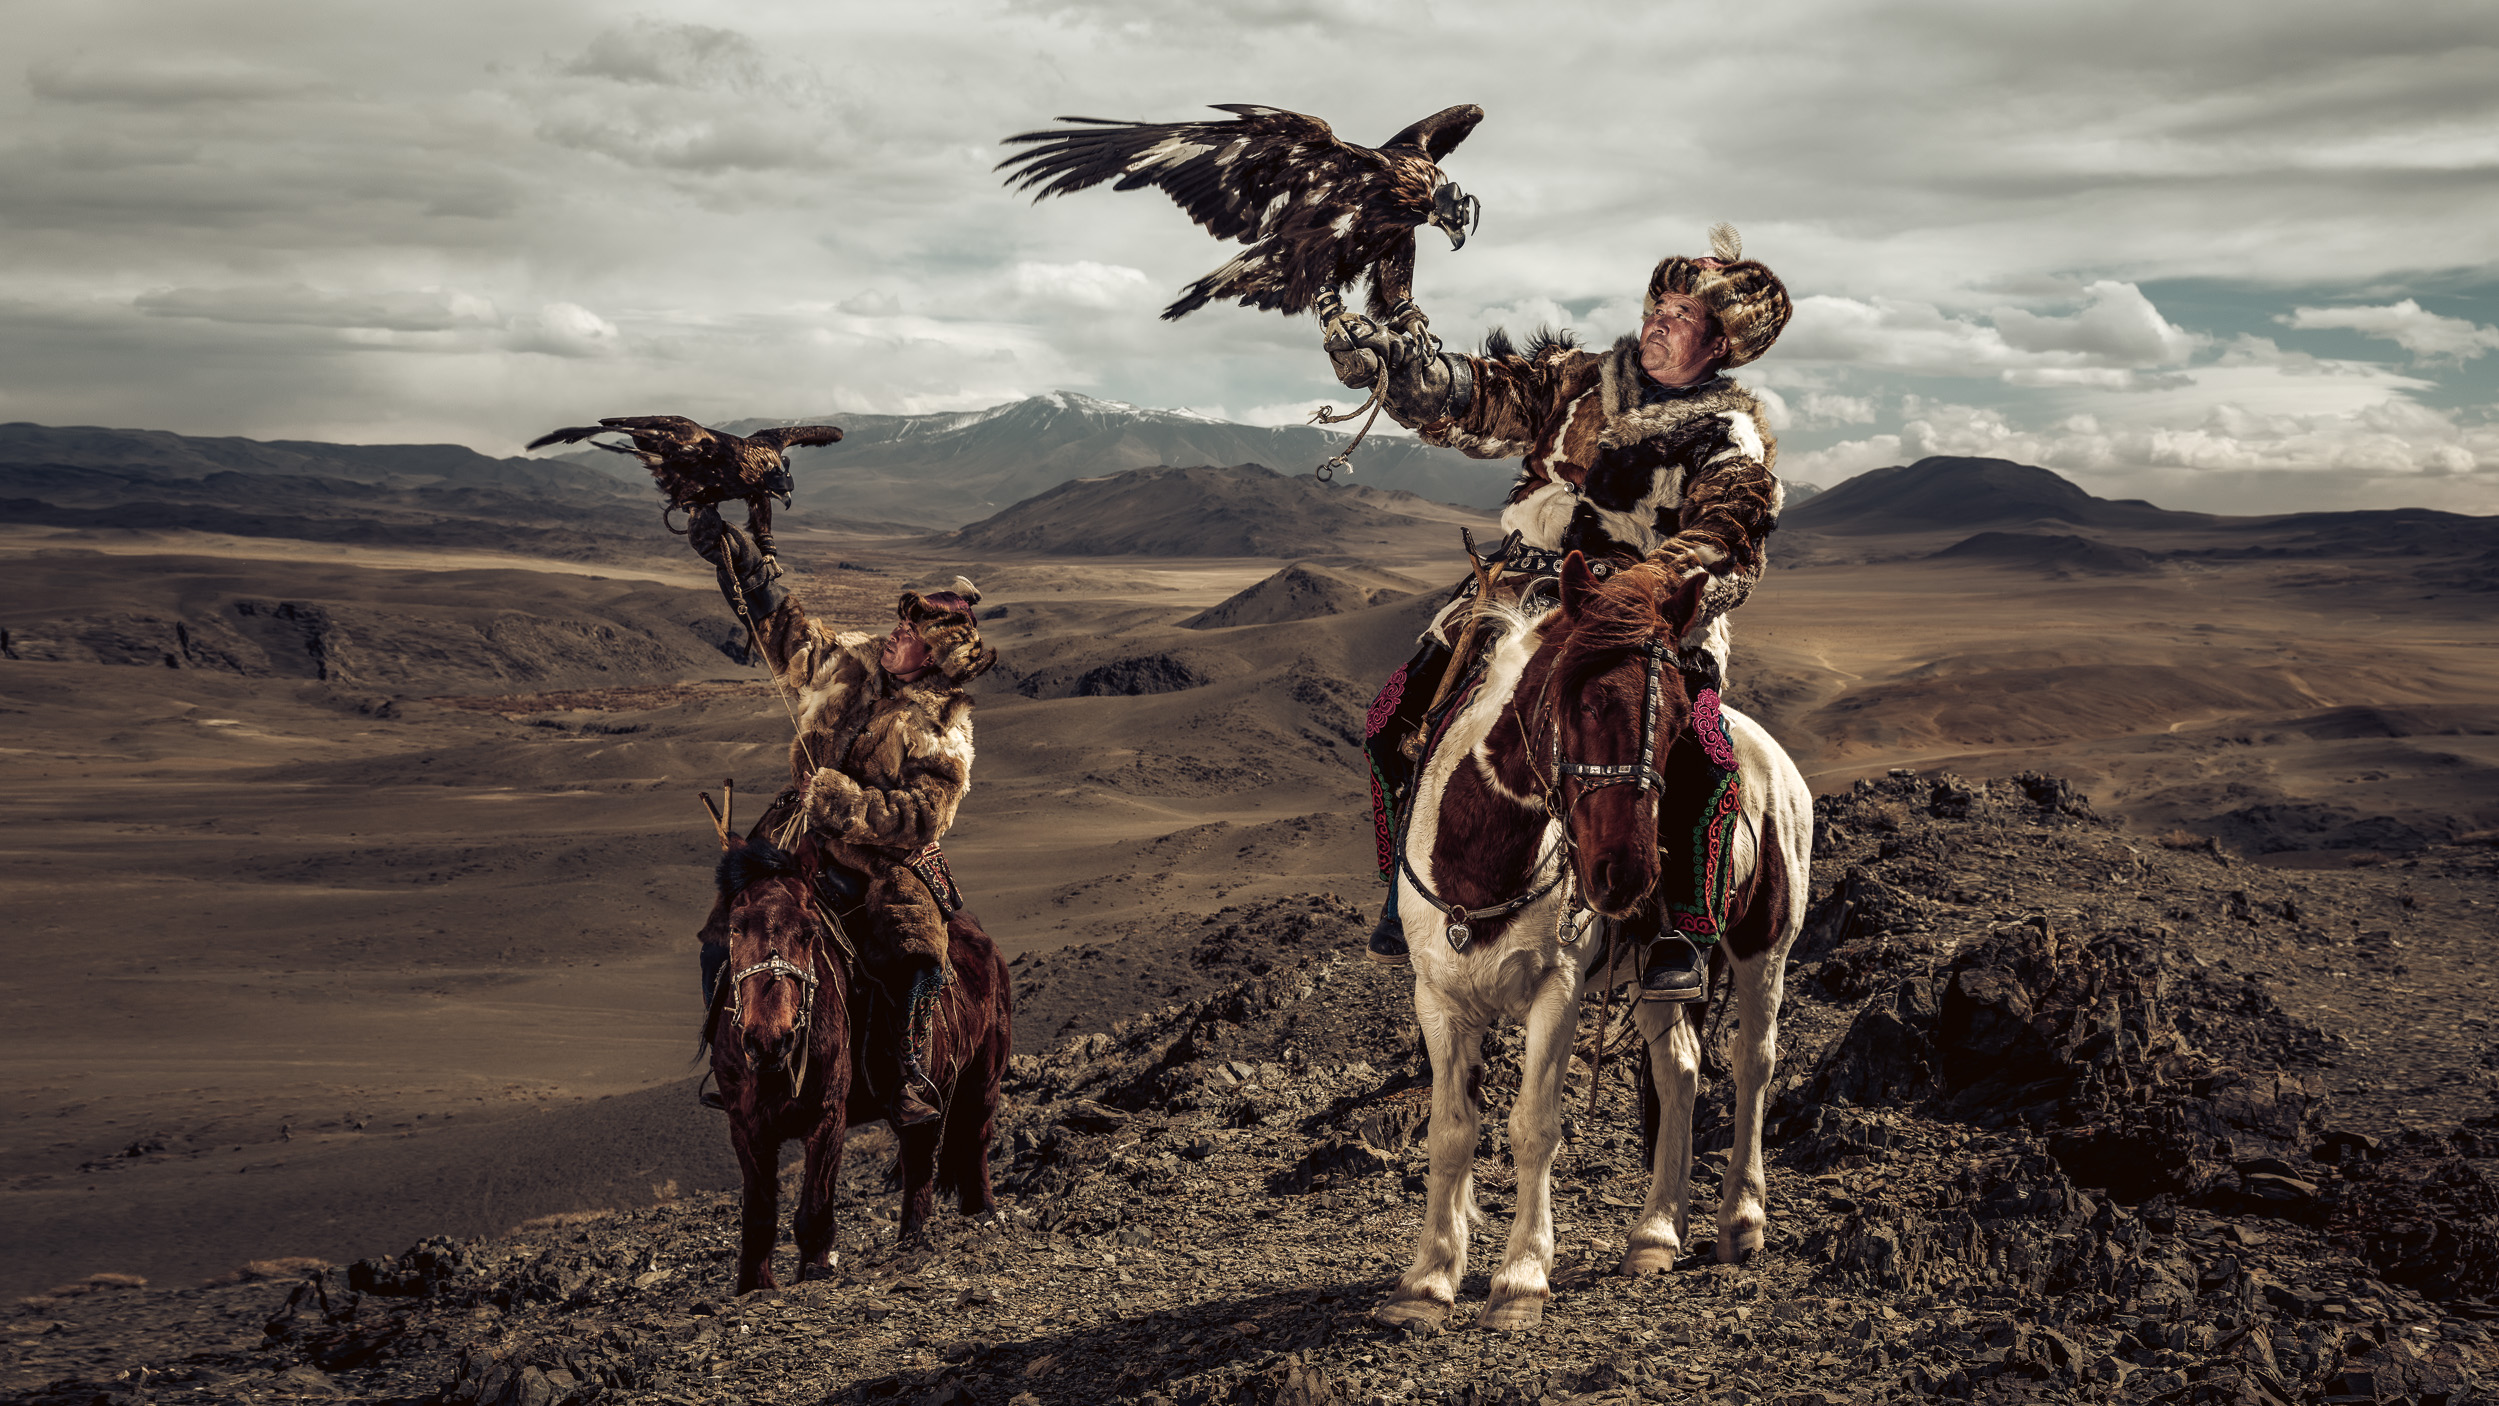 Mongolia with the Fujifilm GFX -